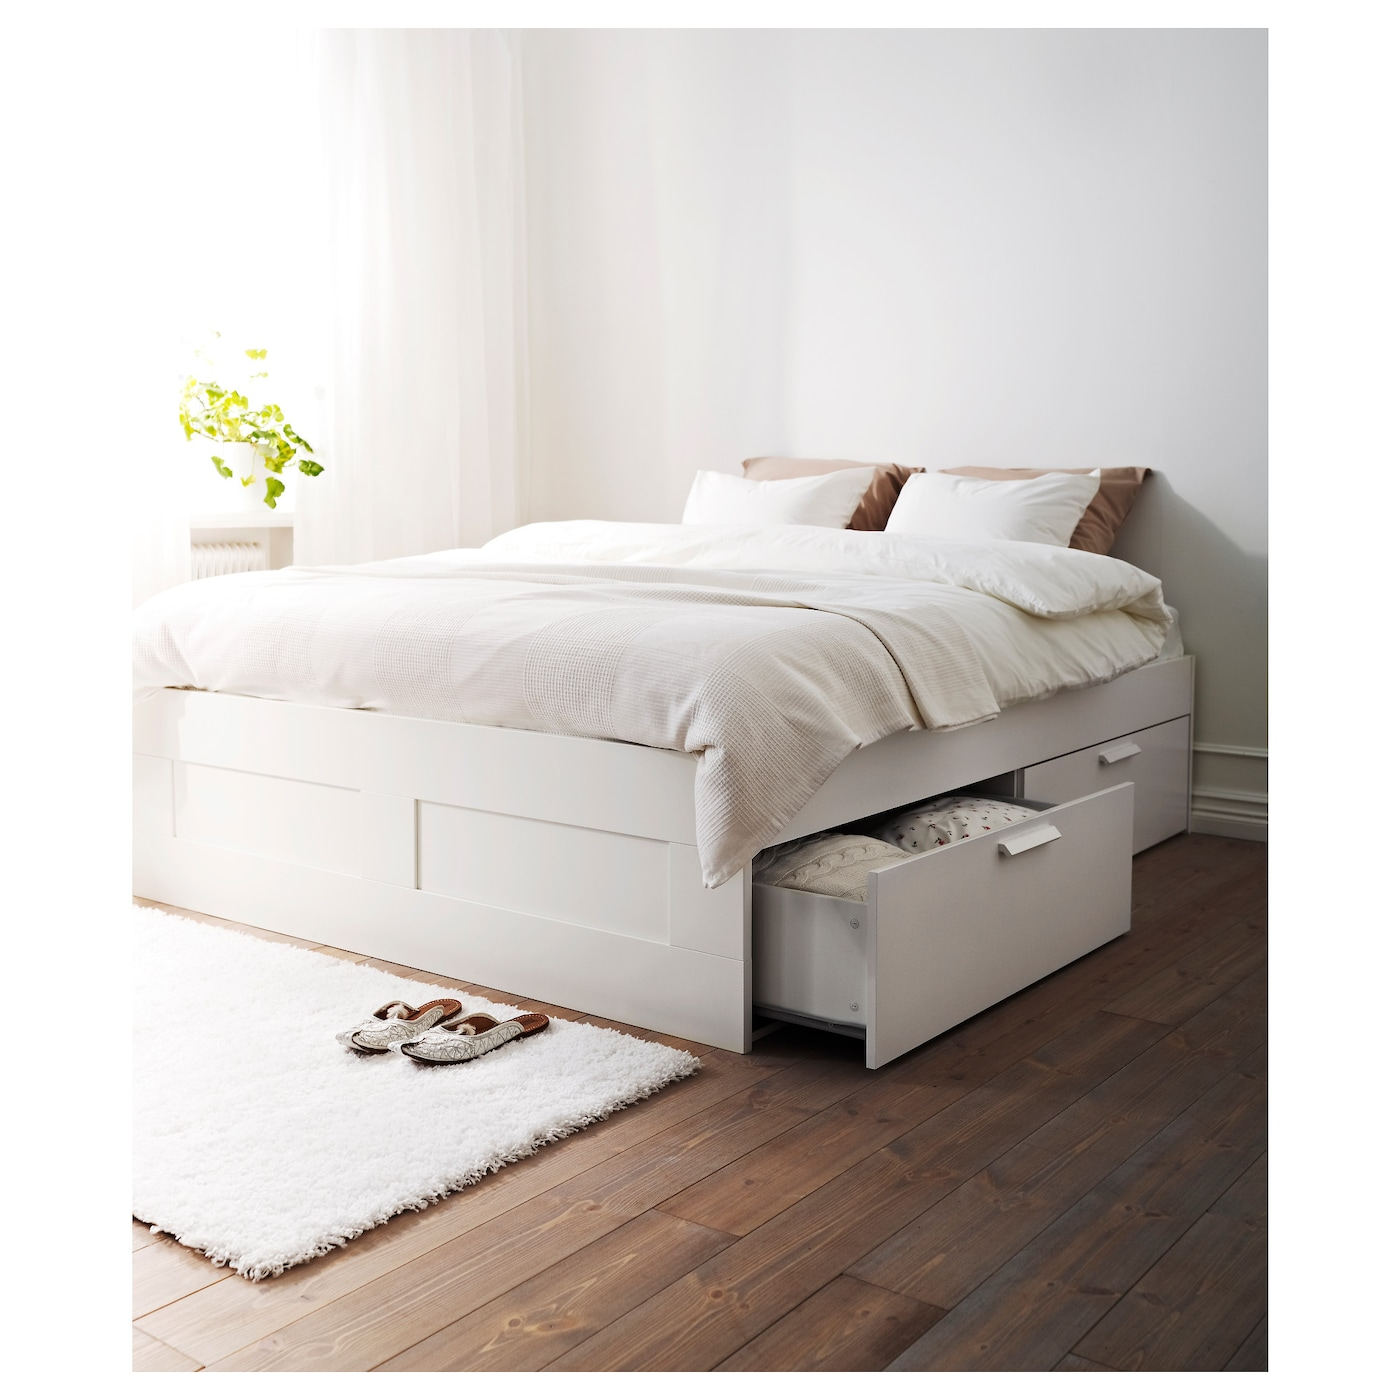 BRIMNES Bed frame with storage White leirsund 180×200 cm IKEA